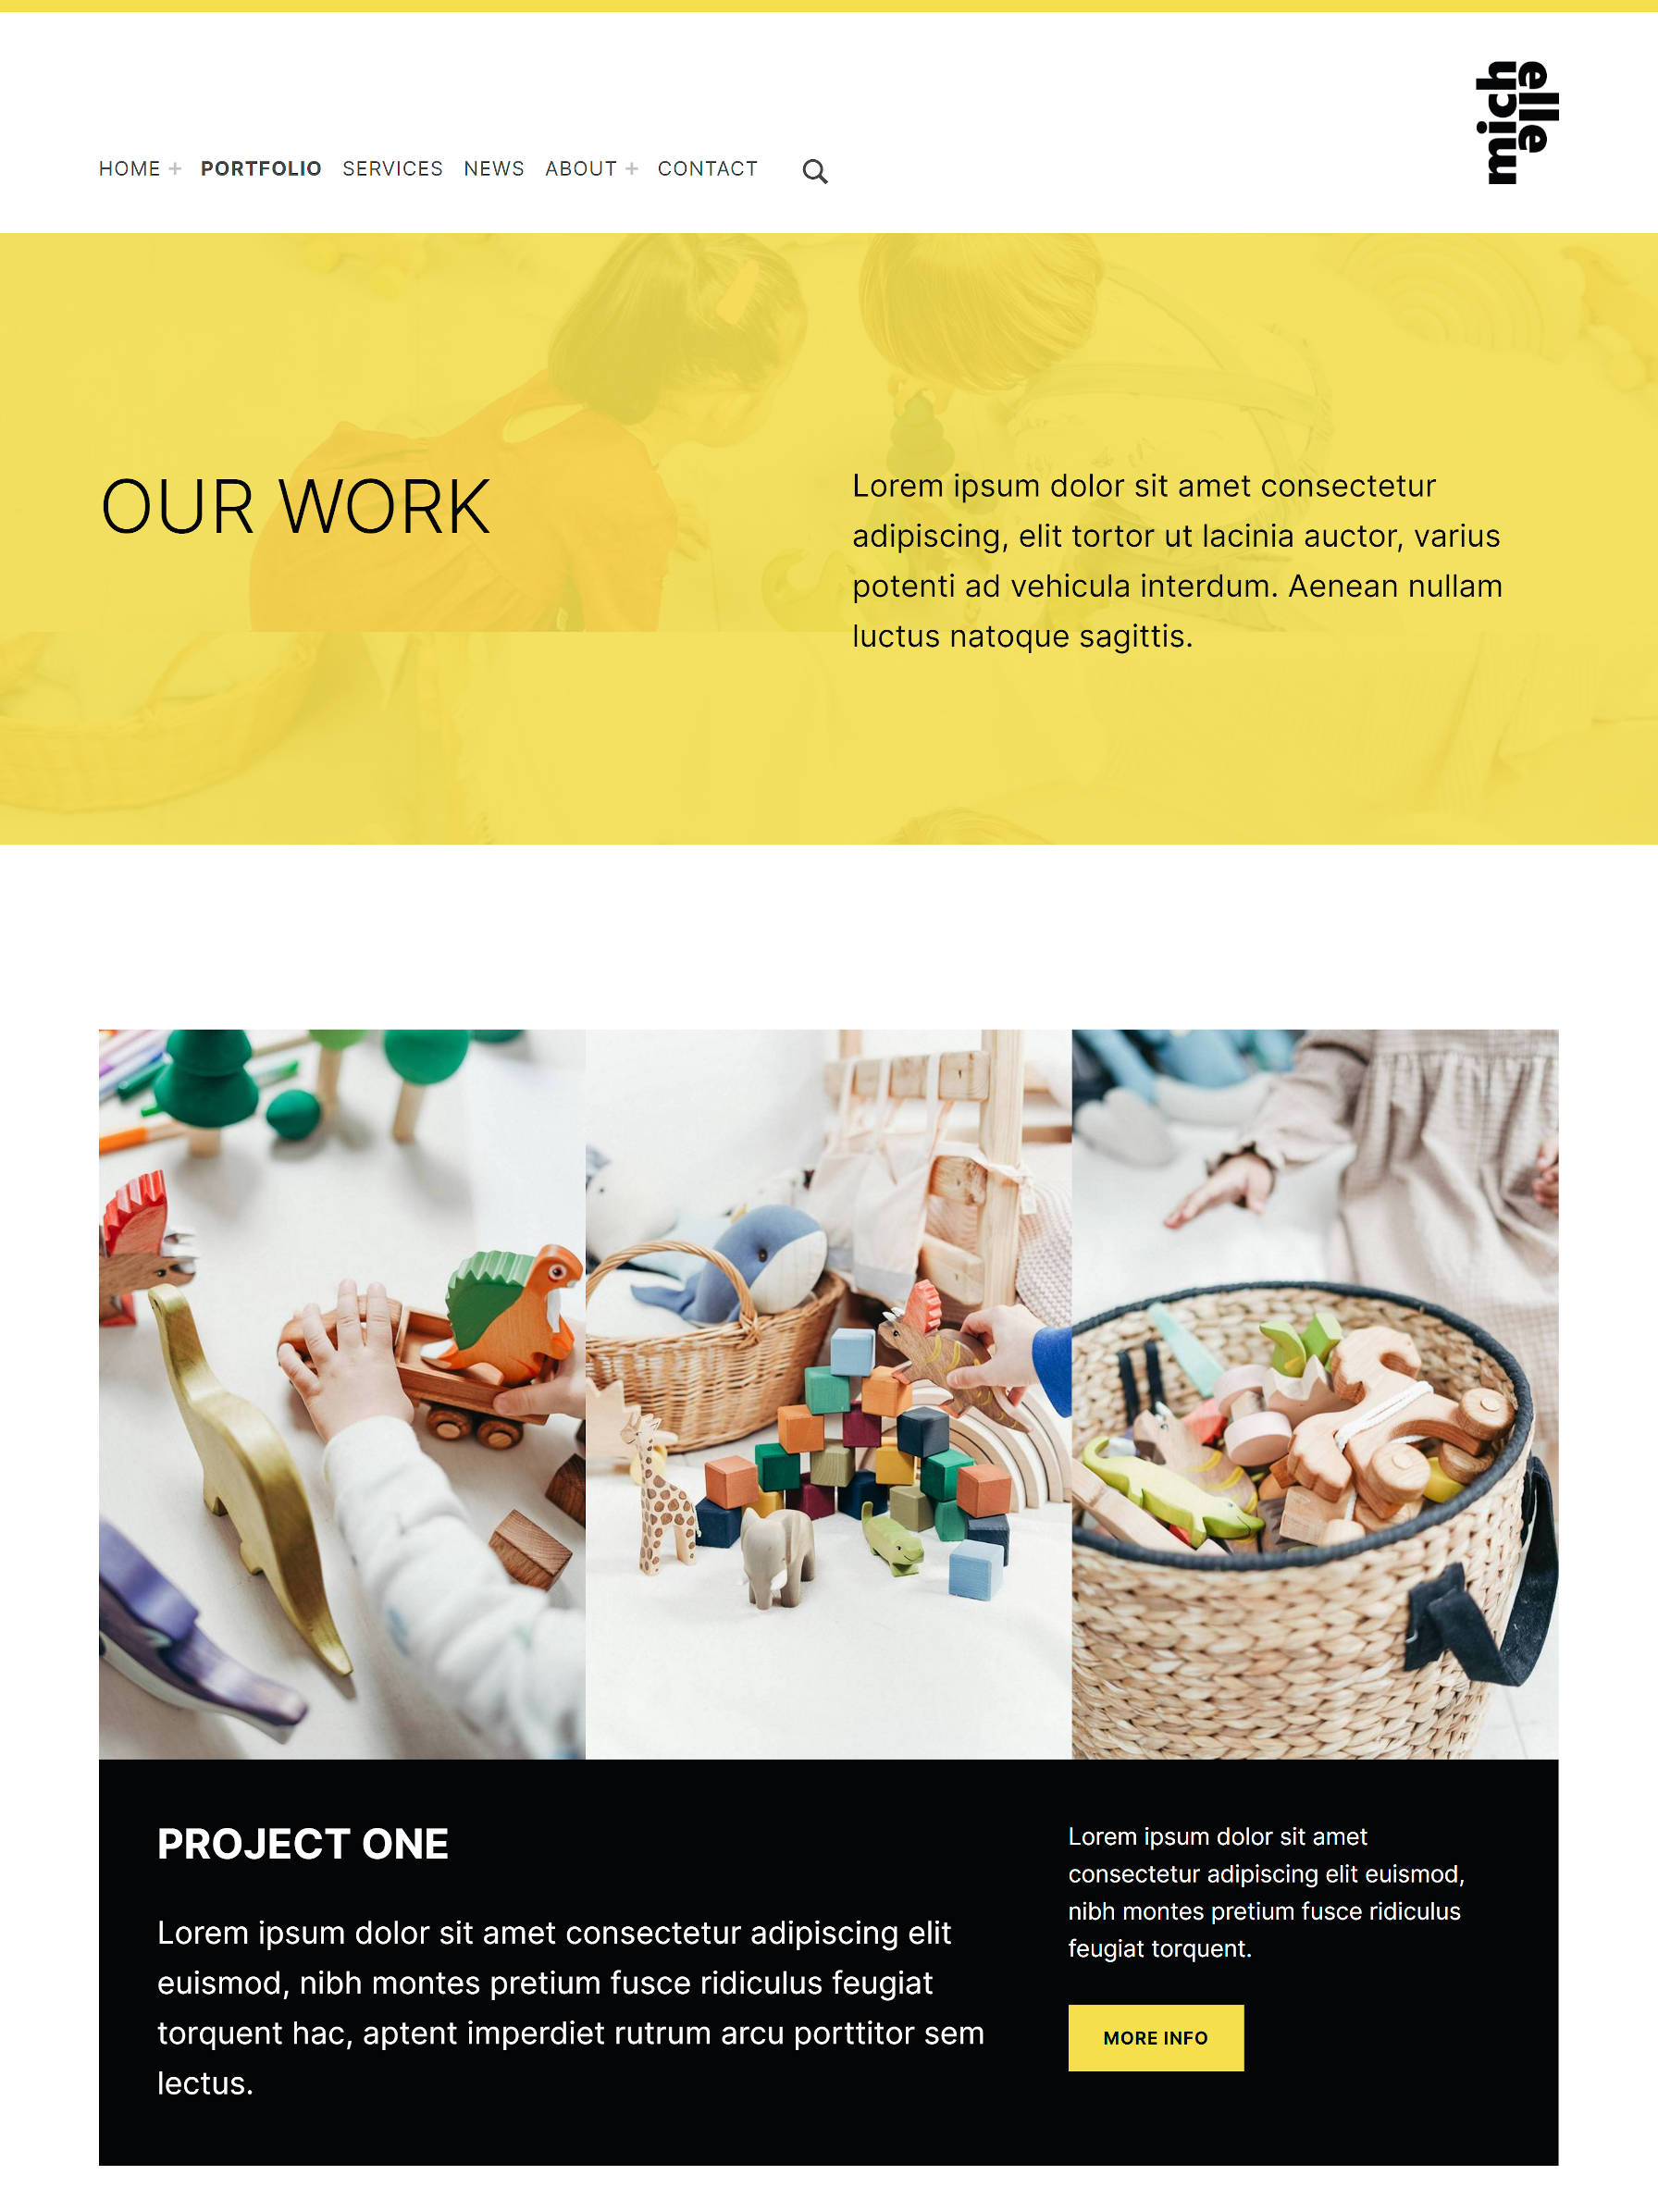 Portfolio design from the Michelle WordPress theme.